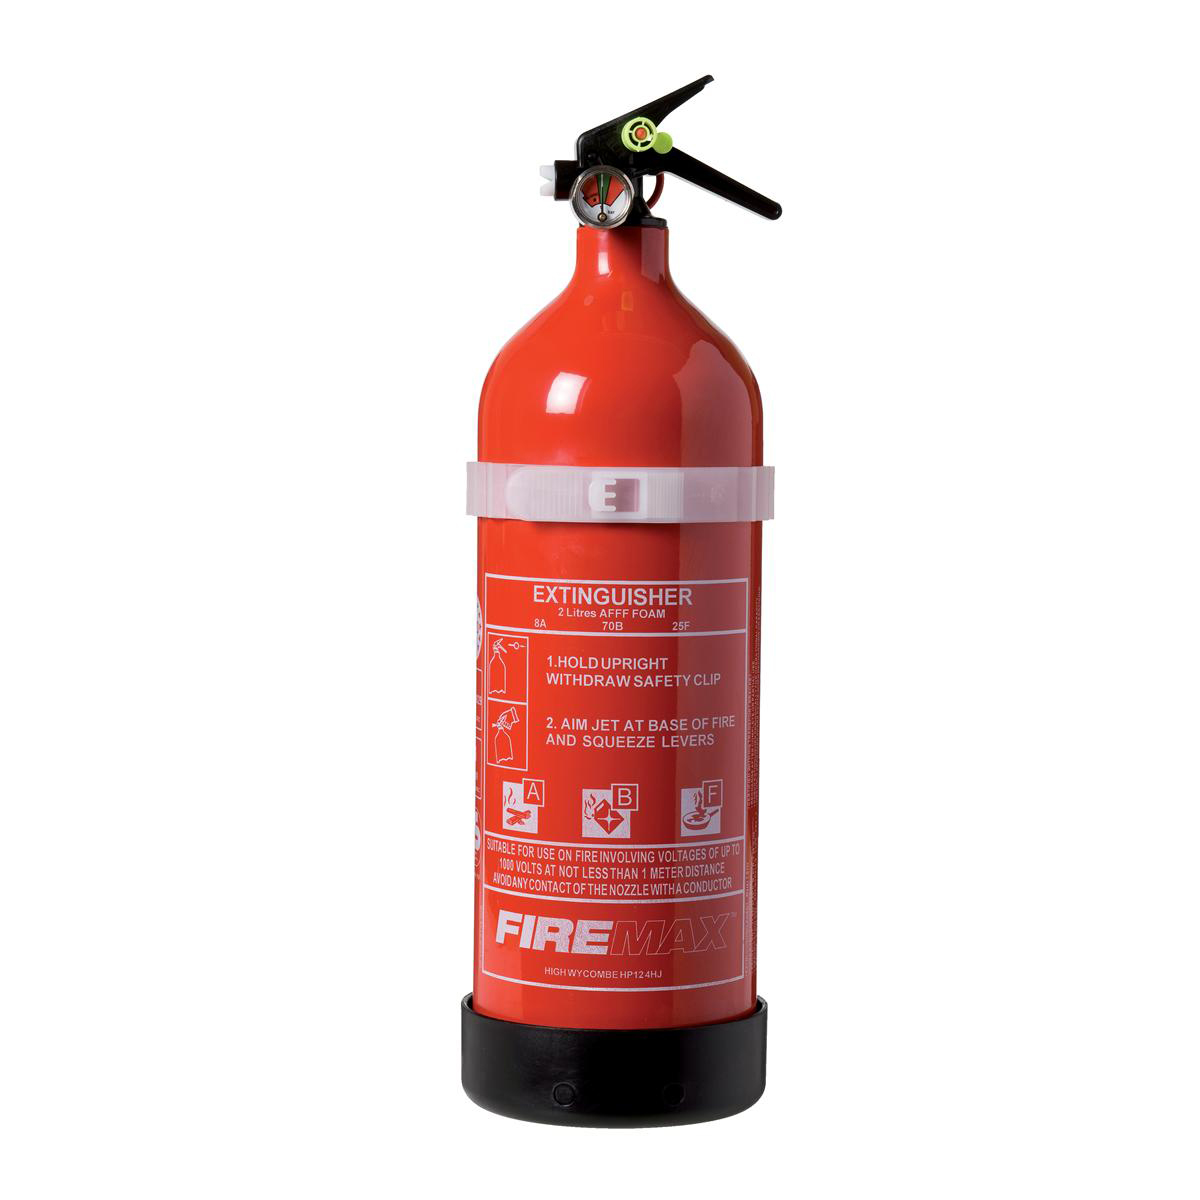 Fire extinguishers IVG 2.0LTR Foam Fire Extinguisher for Class A and B Fires Ref WG10130